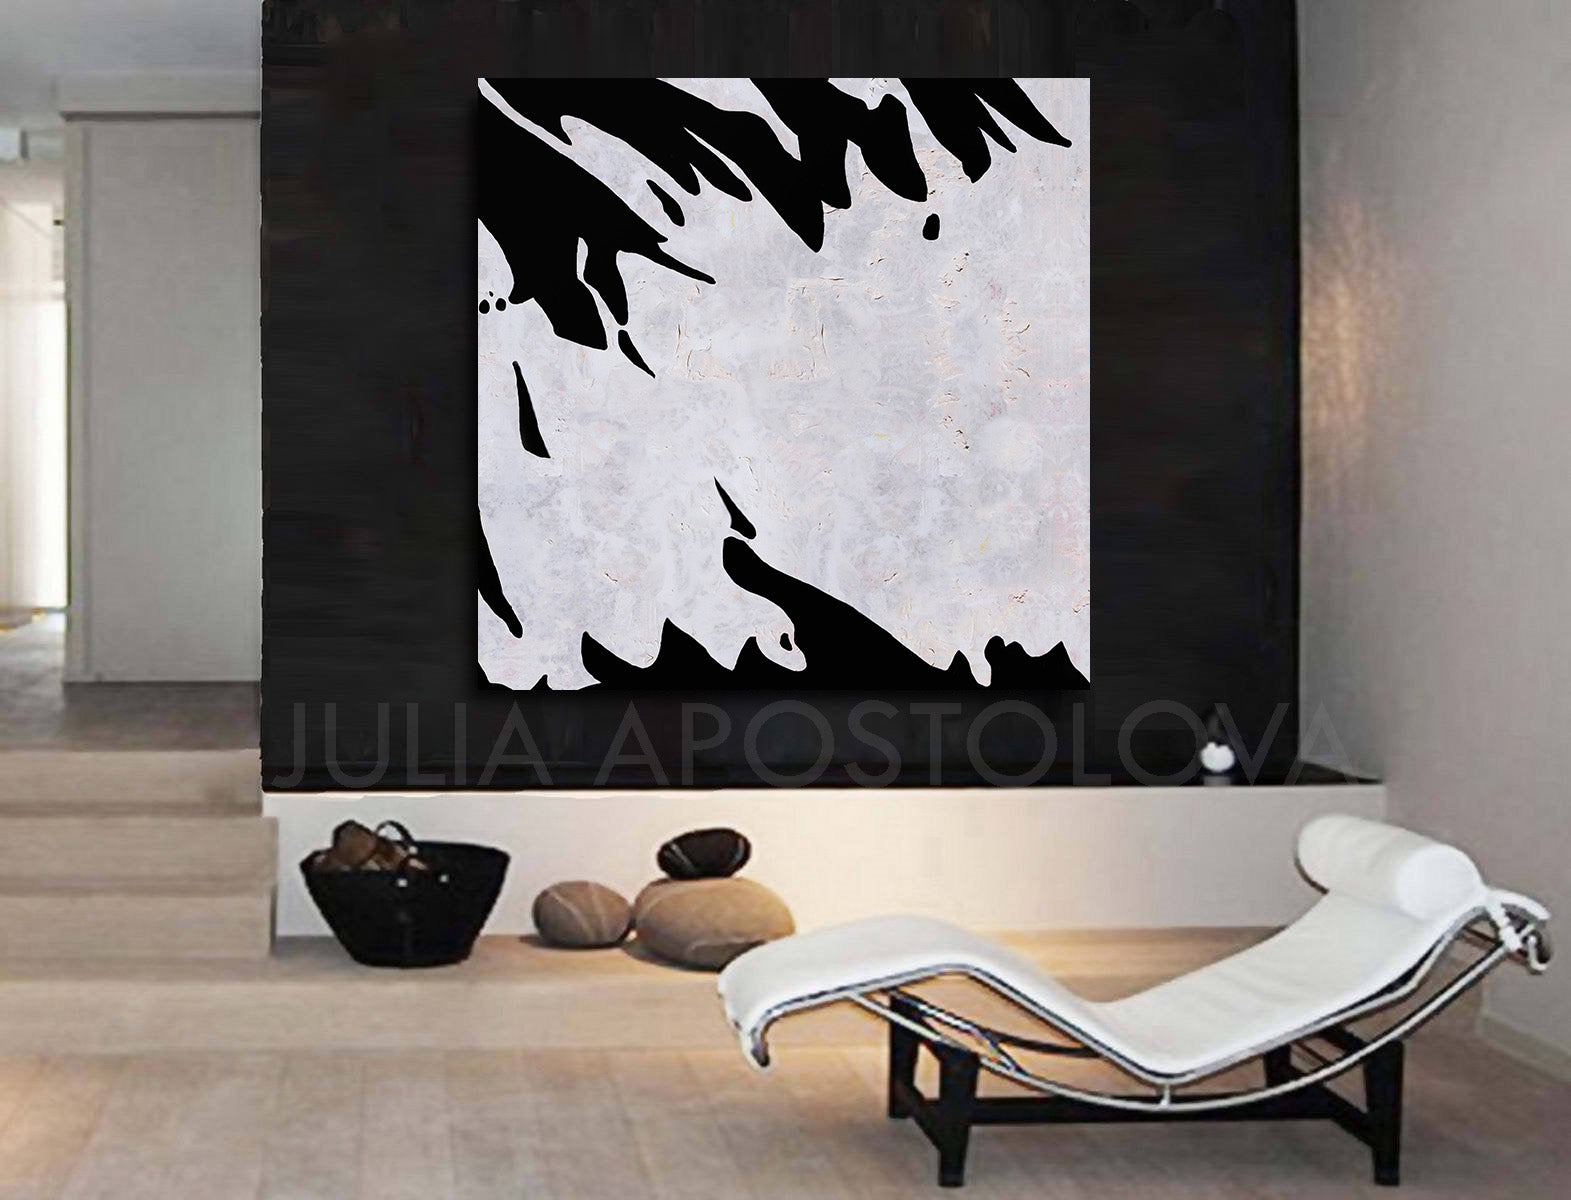 Black White Abstract Wall Art Modern Painting Print Julia Apostolova